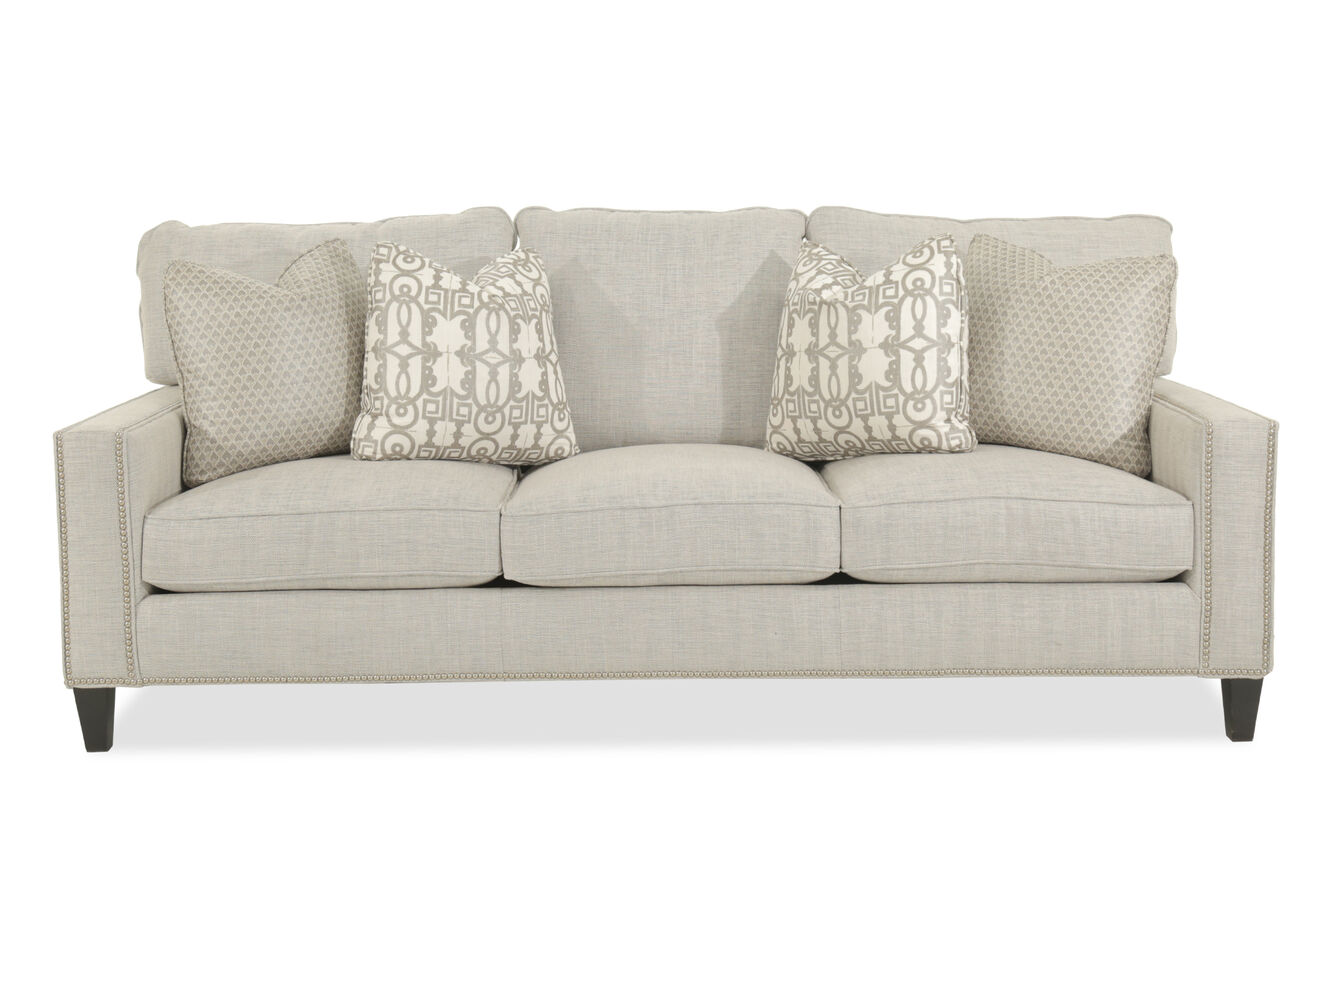 Couch definition 28 images lawson sofa definition home for Divan meaning